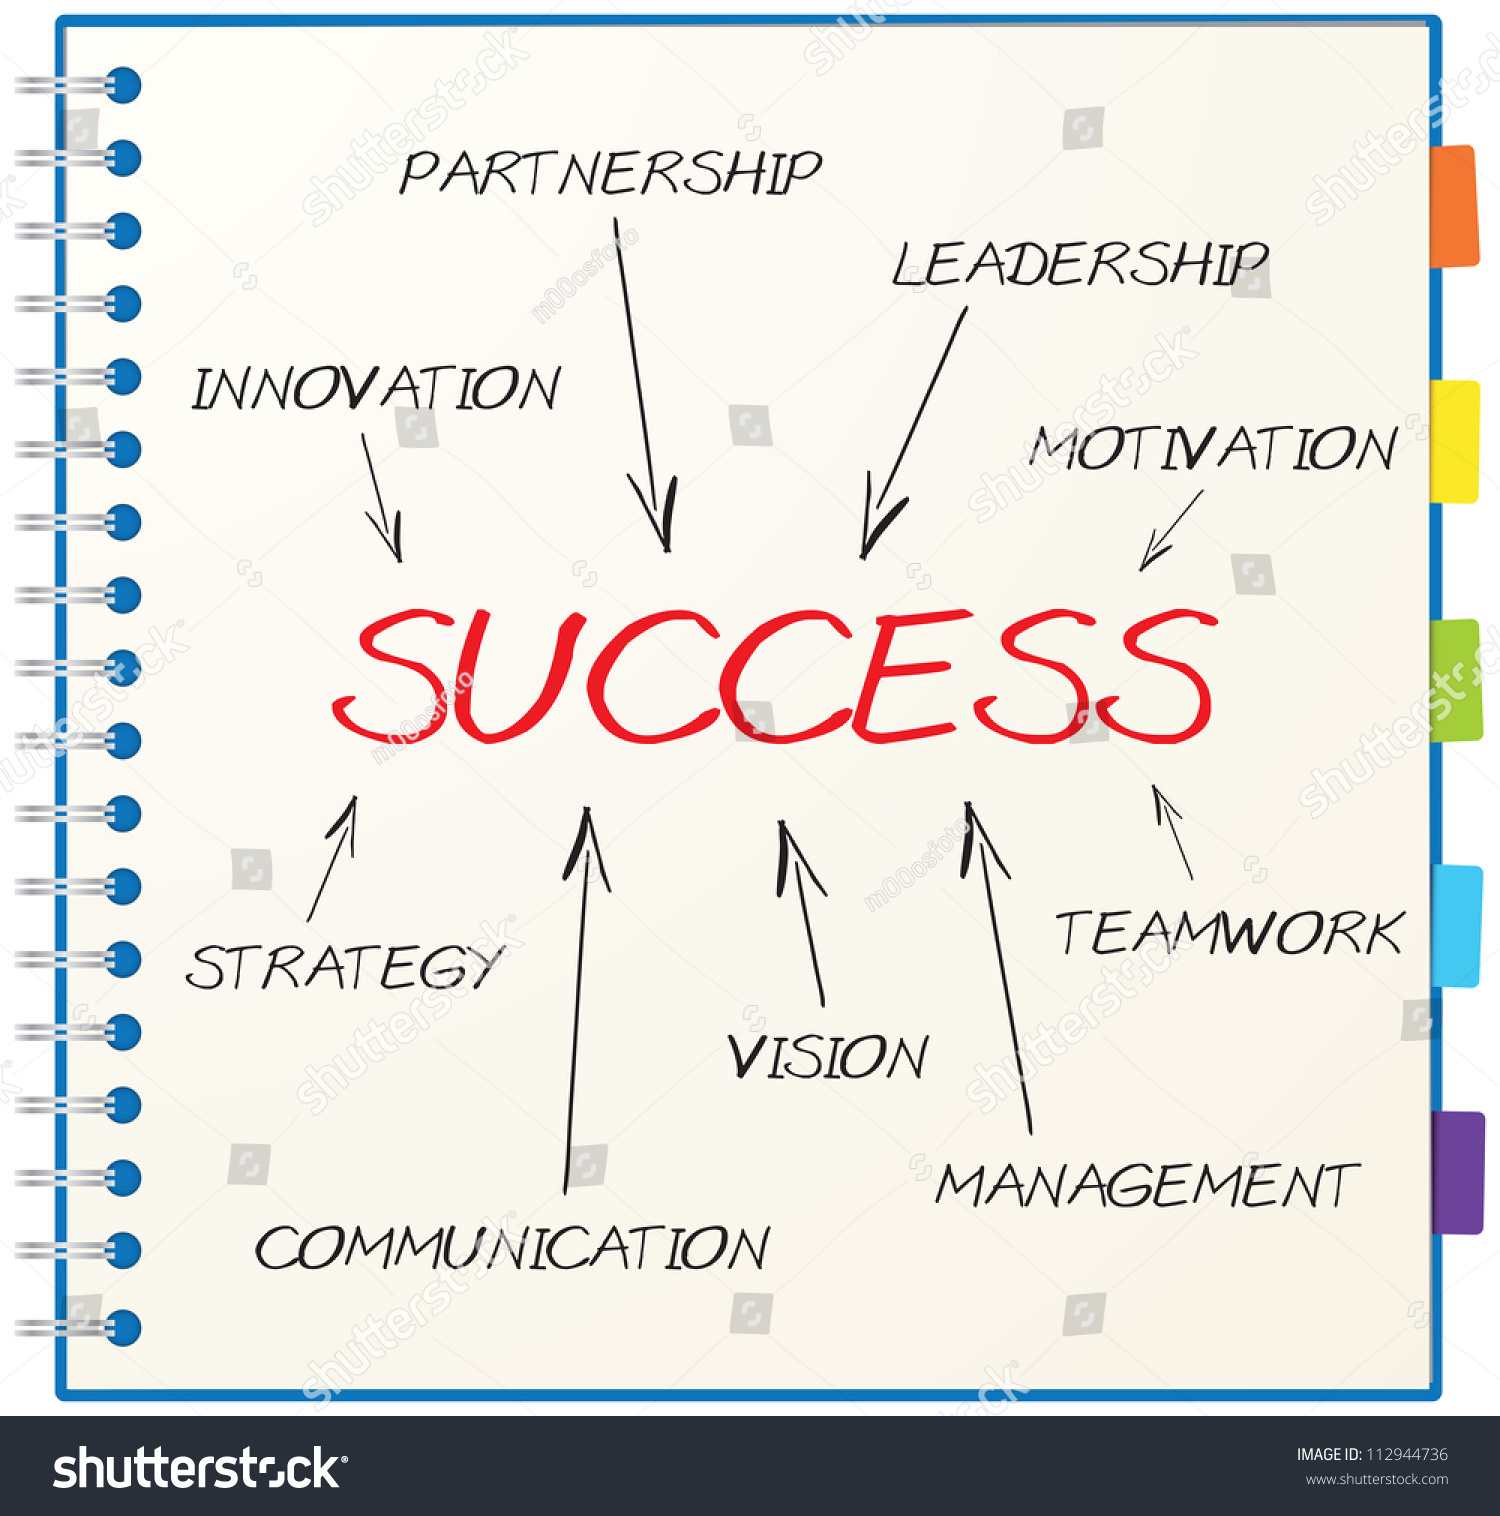 concept of success consists of vision strategy teamwork save to a lightbox